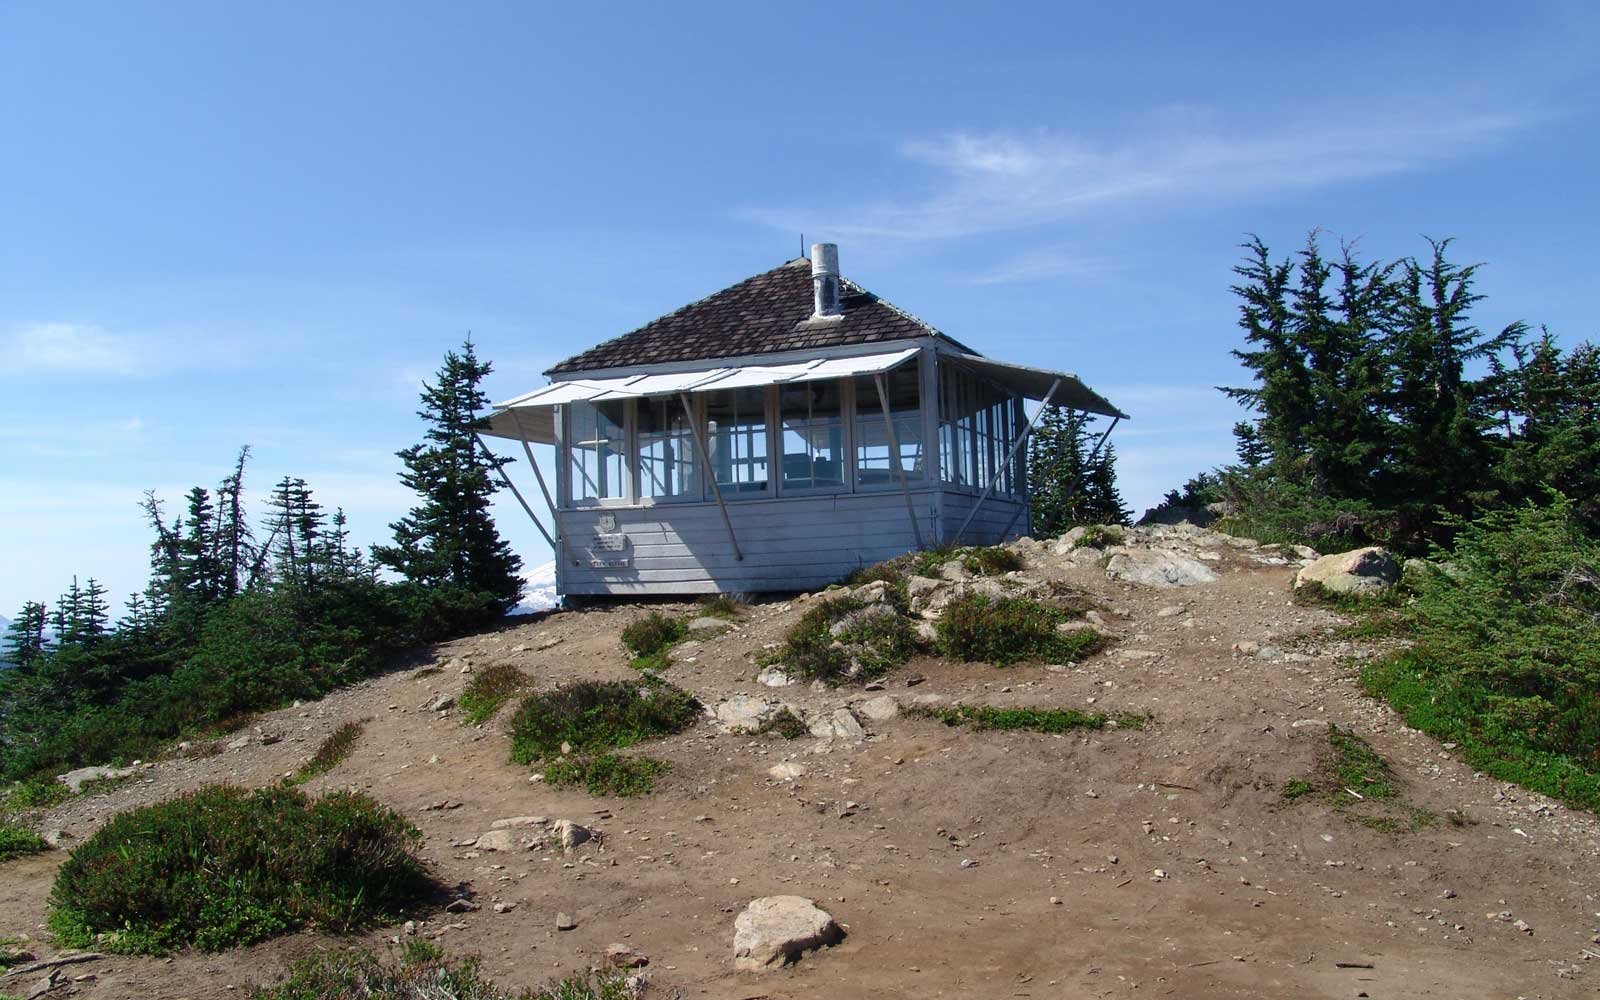 Washington State Fire Lookouts